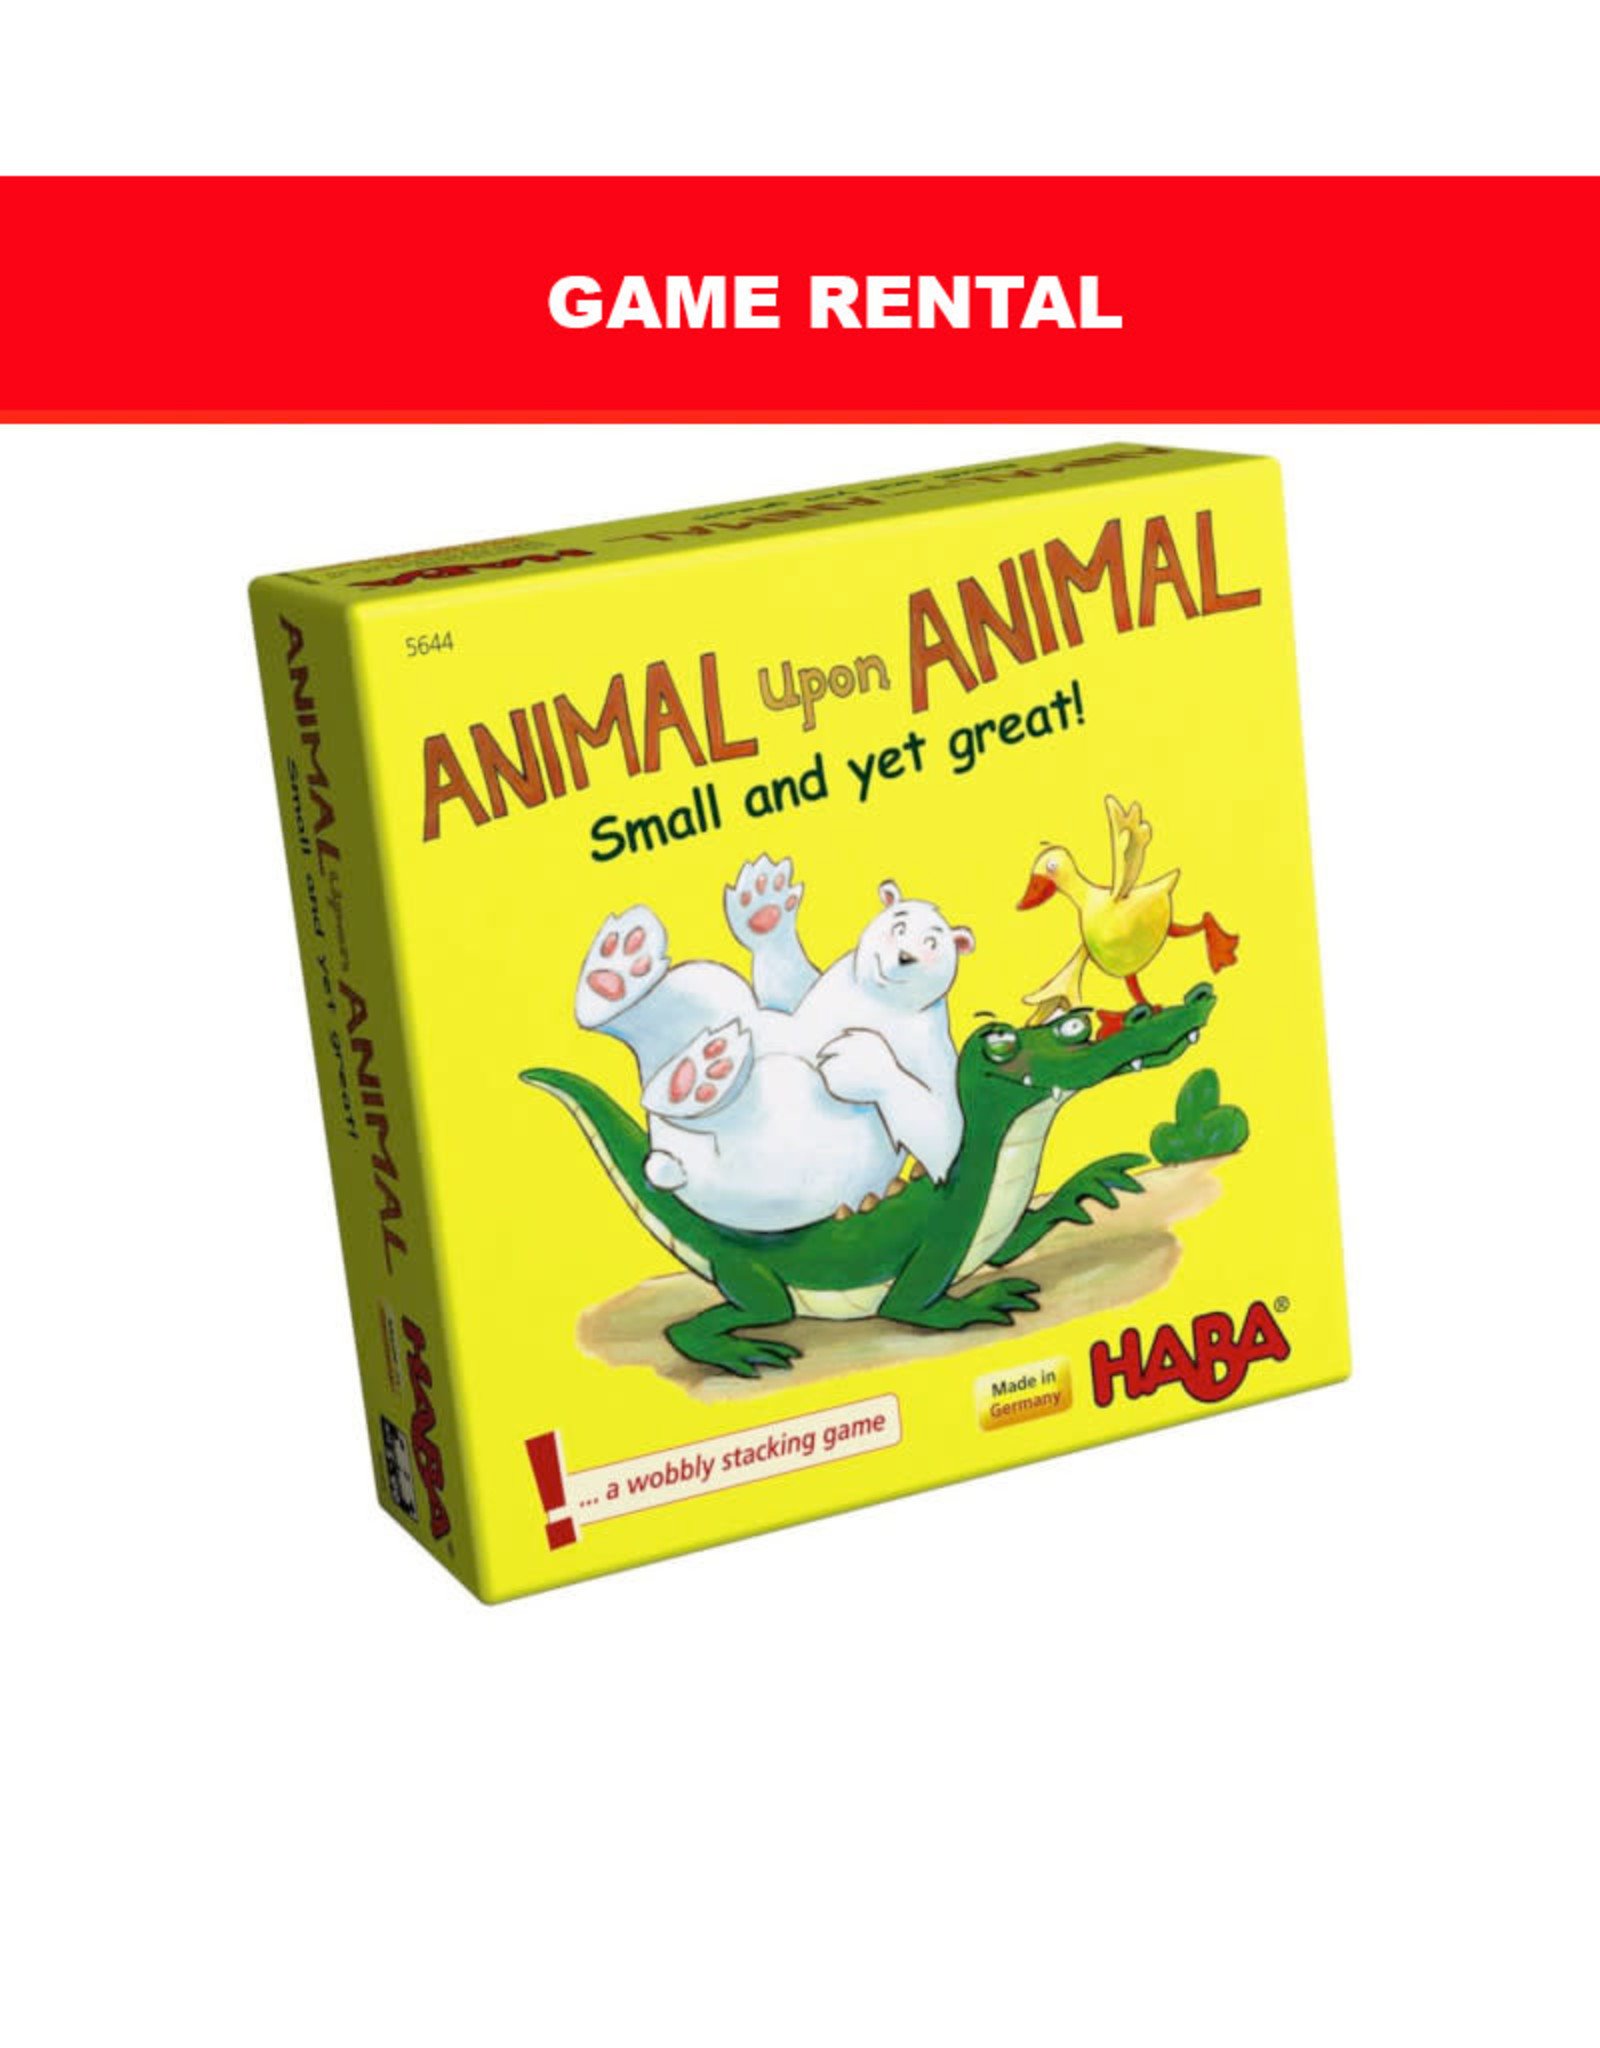 (RENT) Animal Upon Animal Small, Yet Great for a Day. Love It! Buy It!